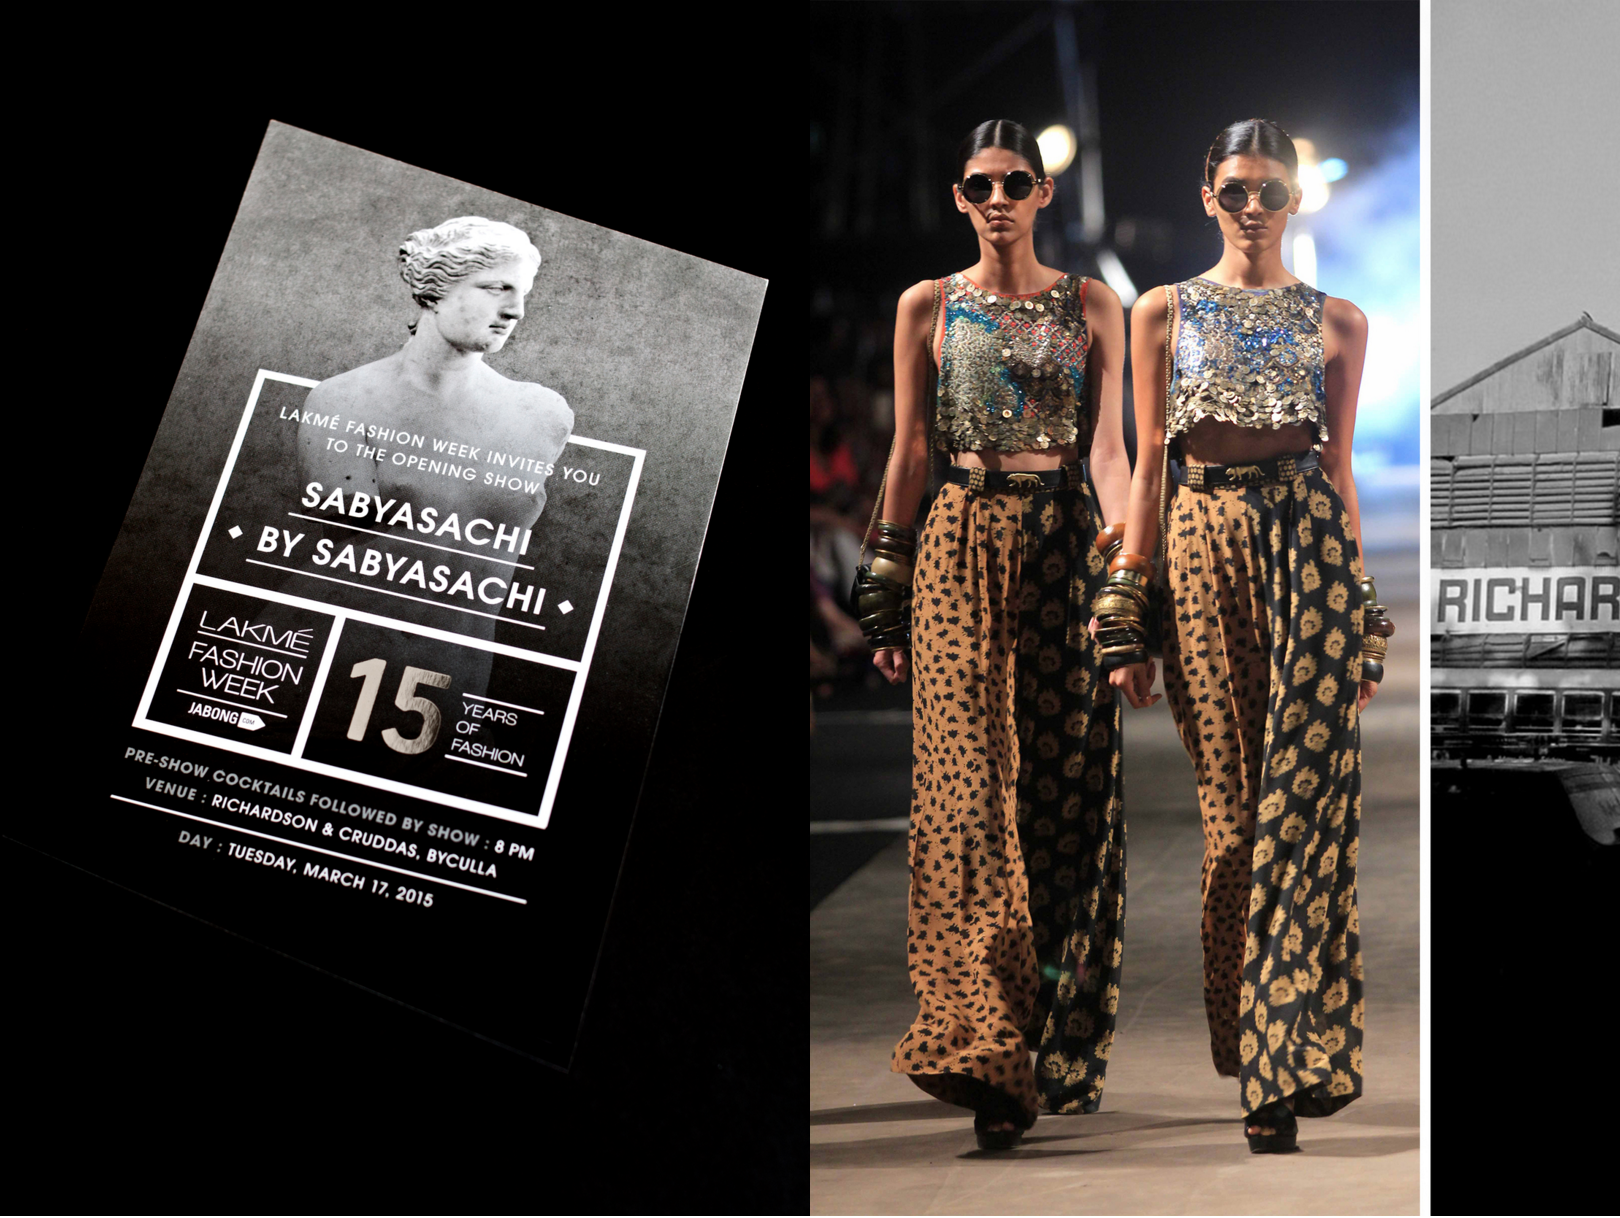 The event started with the Opening Show with designer Sabyasachi Mukherjee at Richardson & Cruddas, which is an abandoned warehouse in the industrial part of Mumbai.The invite was made specific to the designer's brief for his clothing line and in tandem with the location of the event.